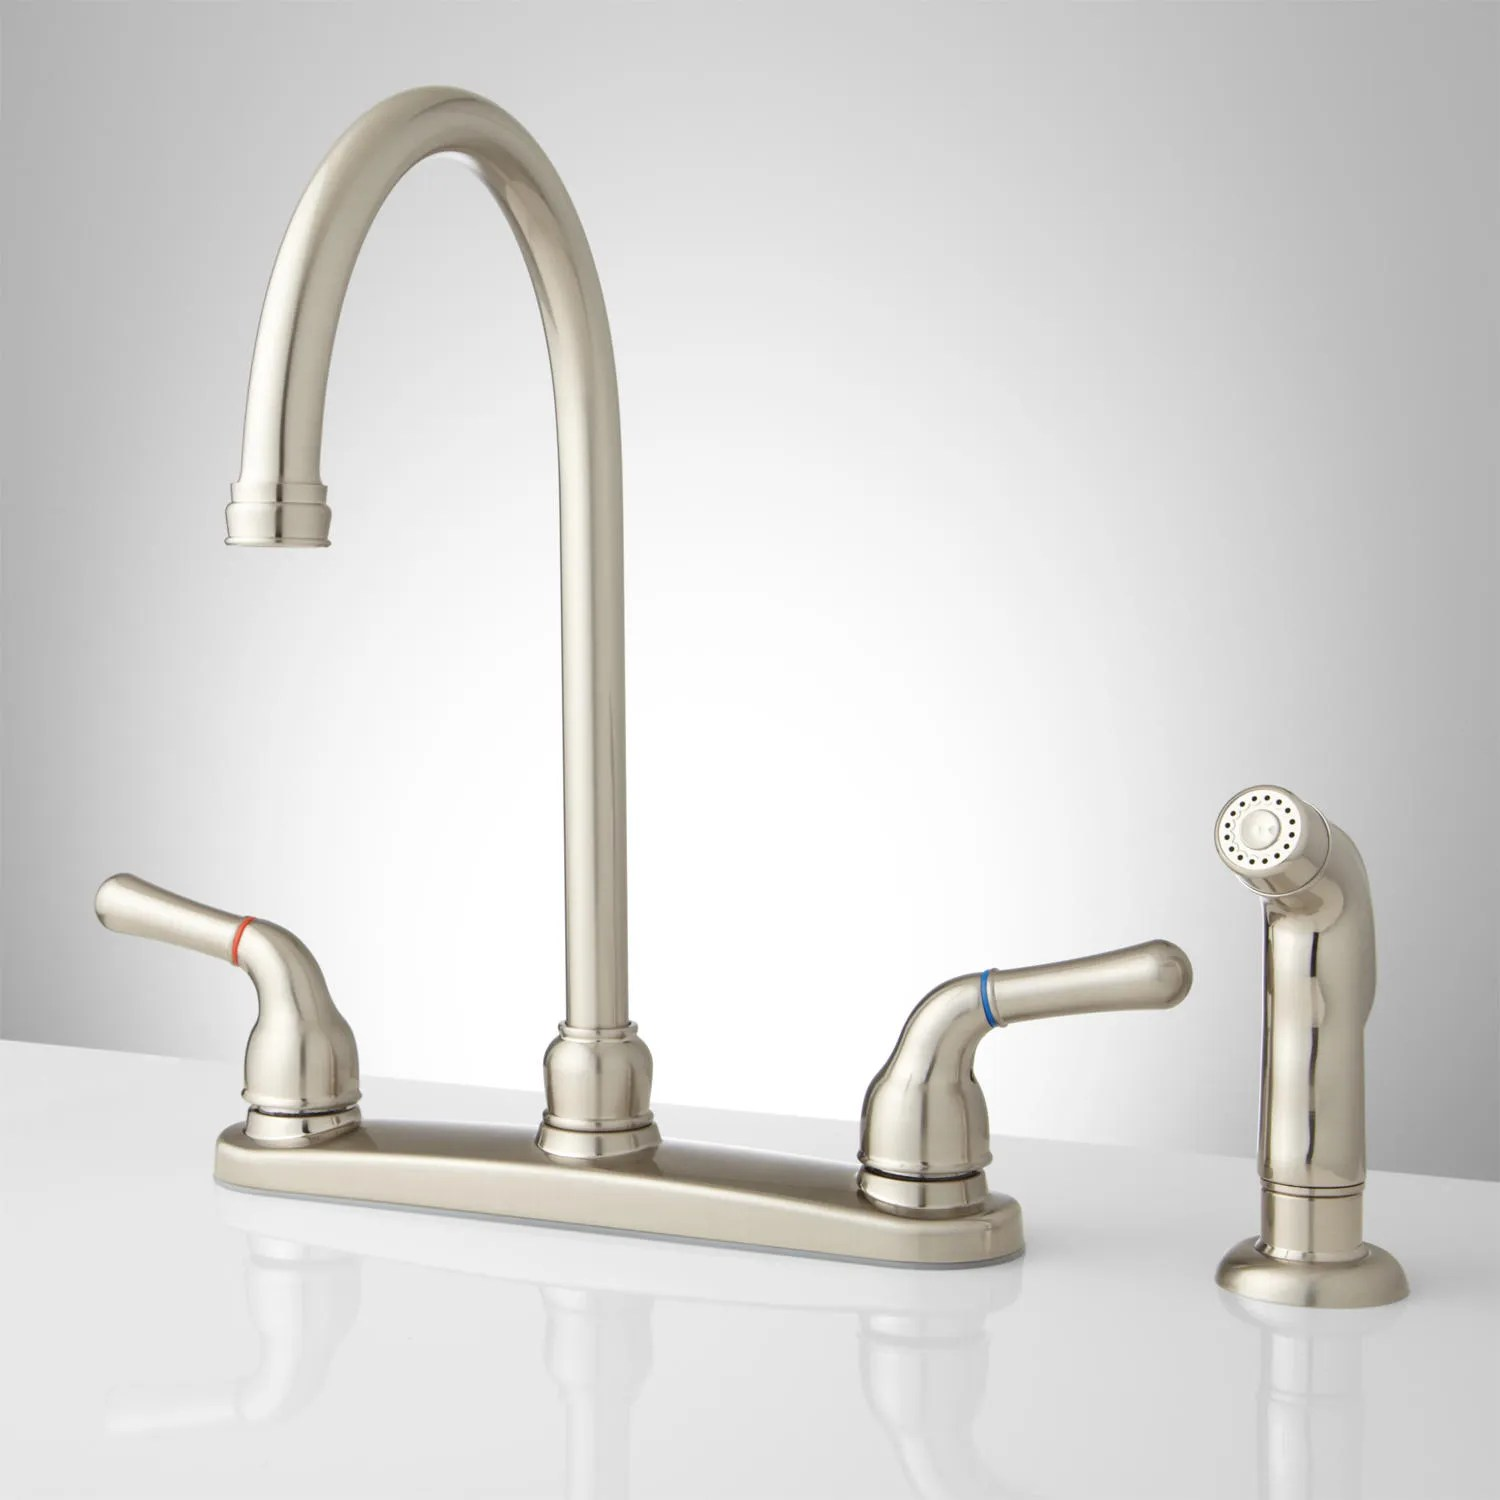 gooseneck kitchen faucet with pull out spray knotty pine cabinets lora single handle side